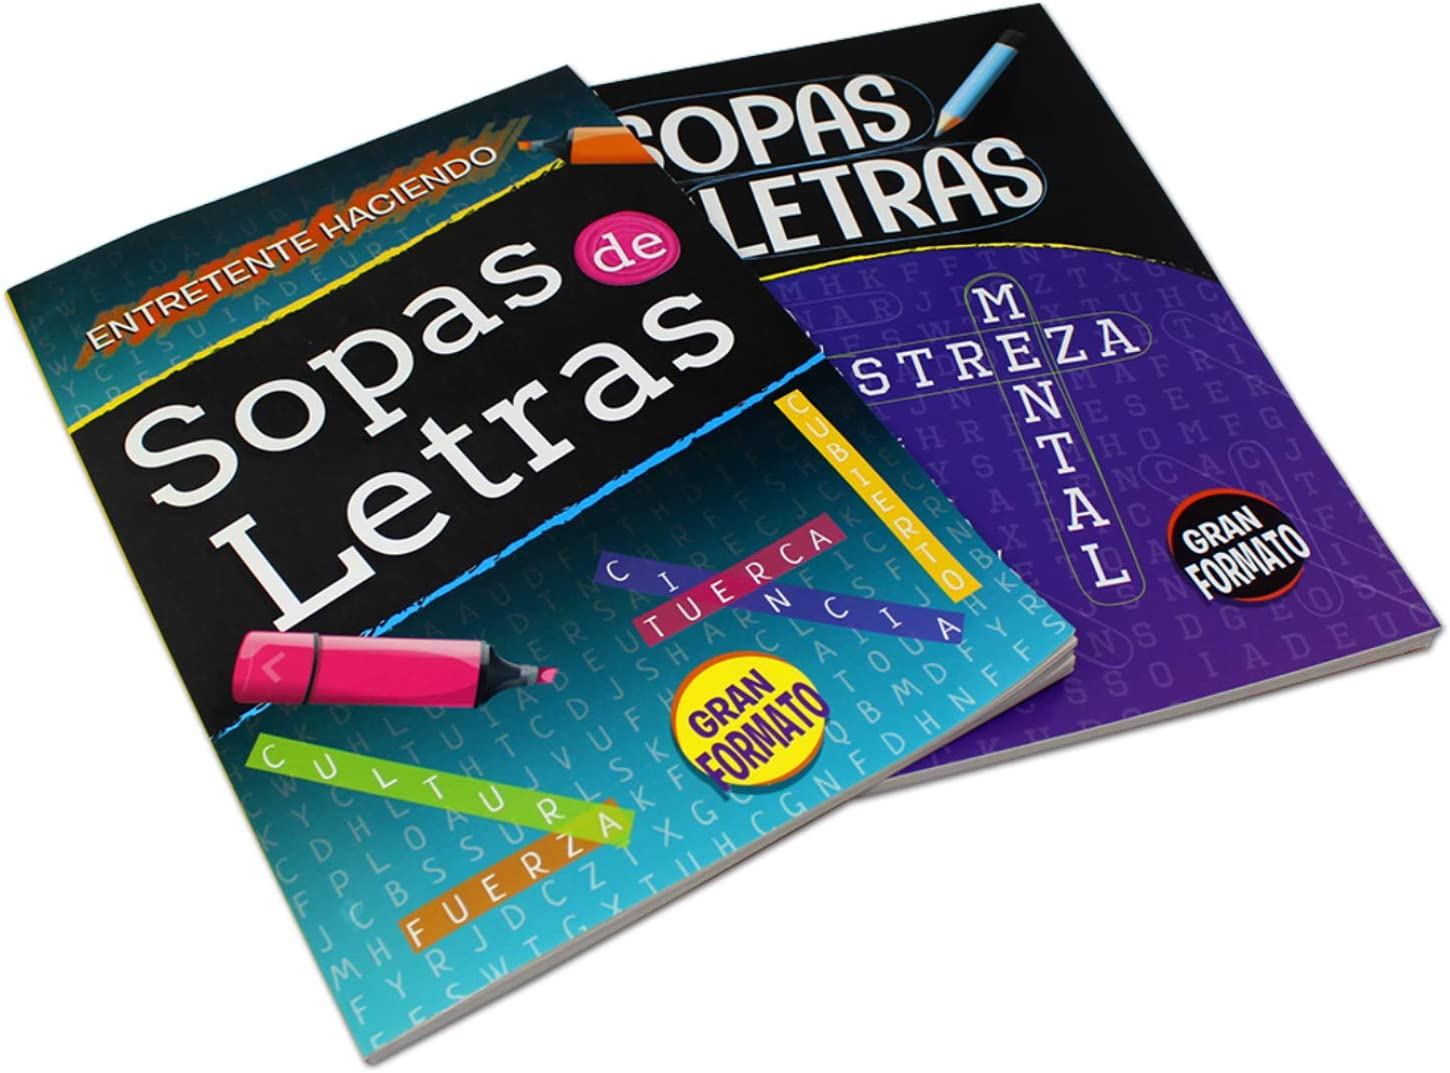 Amazon.com: 2 Pack - Spanish Word Search Book Jumbo, Sopas de Letras en  Espanol Each Easy-to-See Seek & Circle. Word Find, Work Puzzle Game Book:  Toys & Games